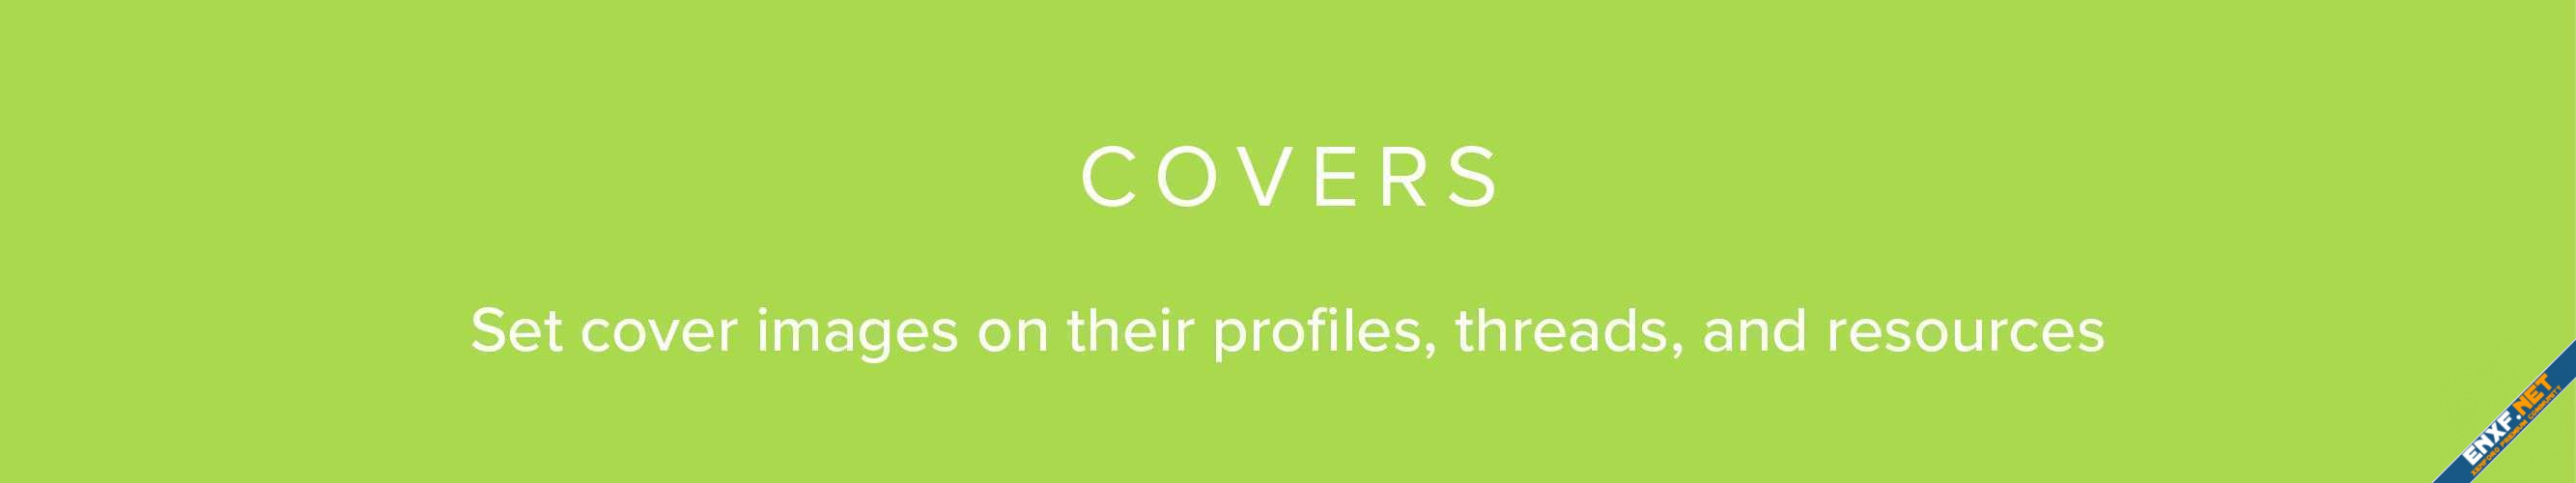 [TH] Covers